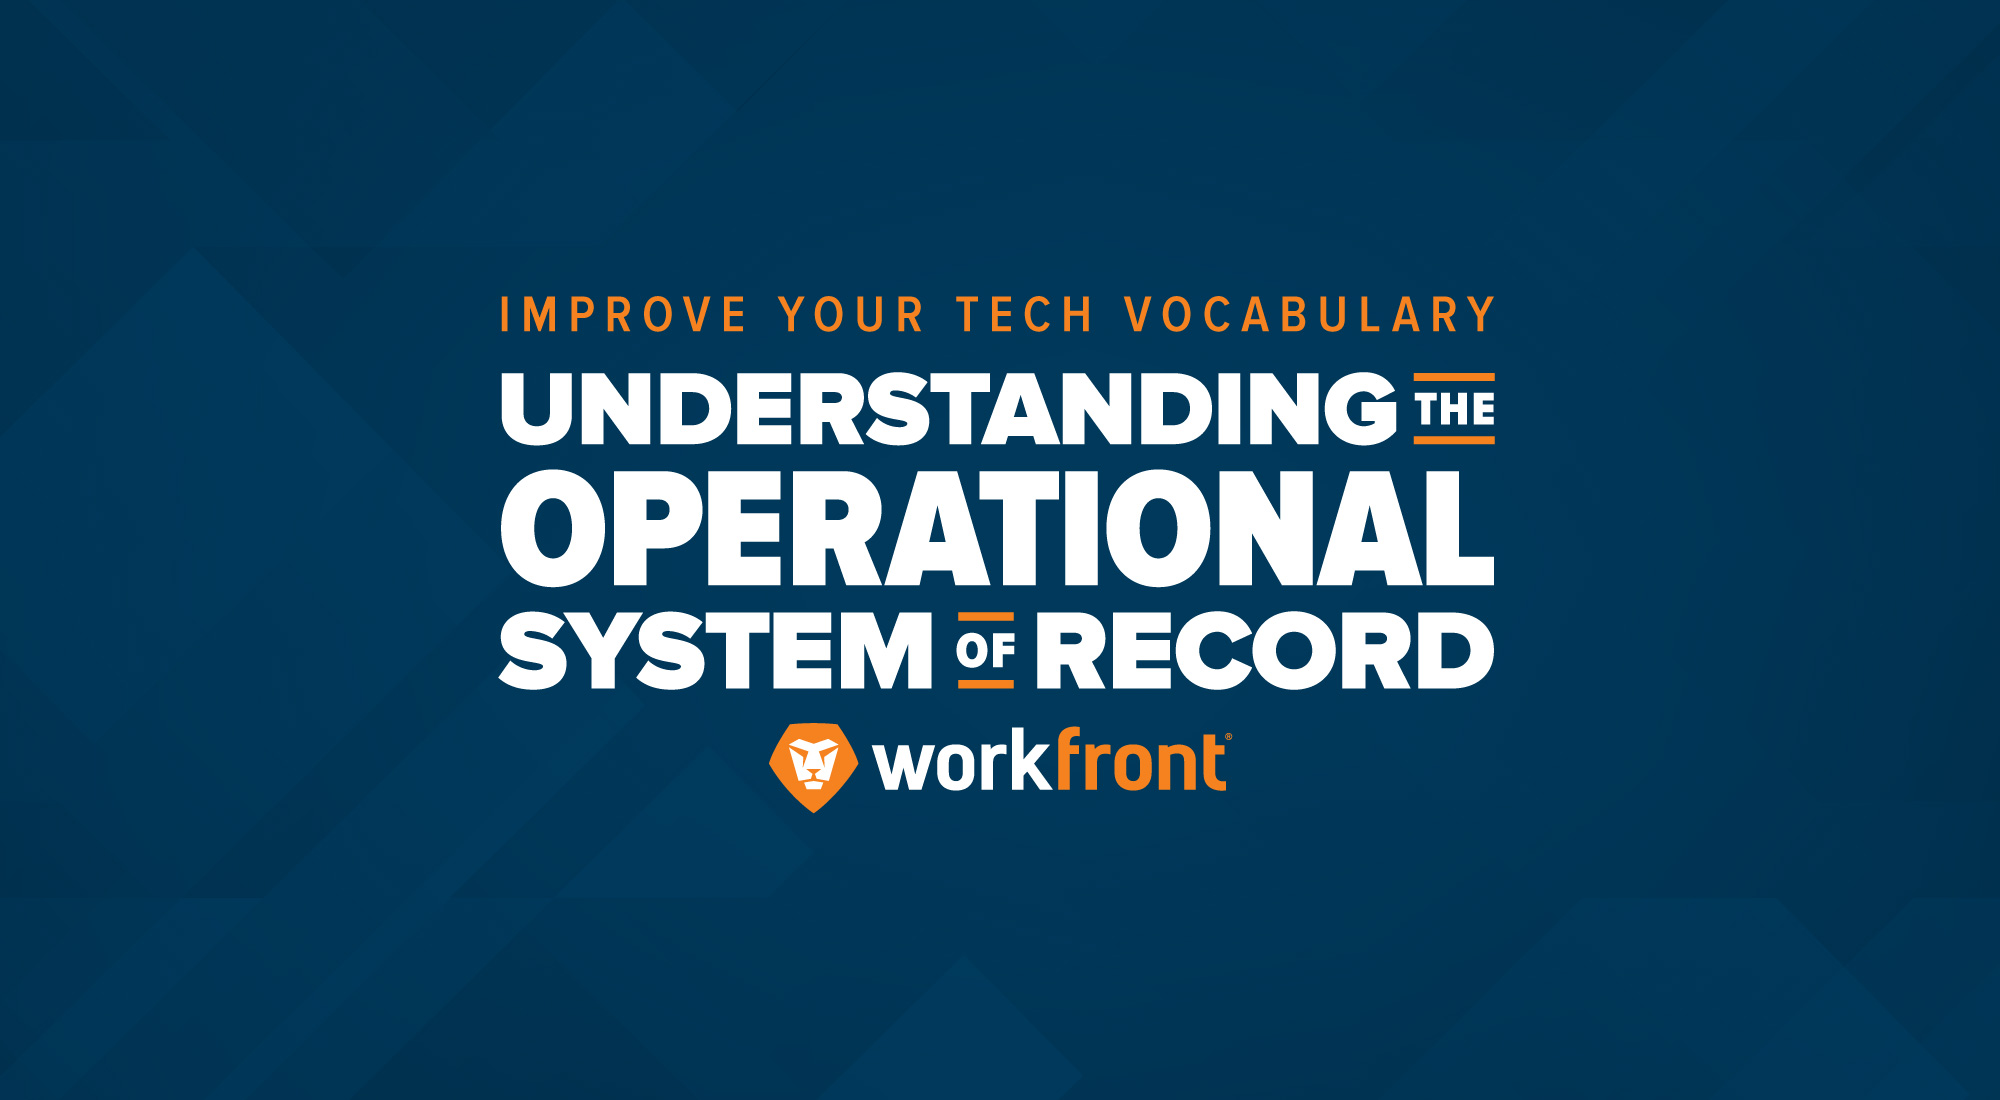 operational system of record